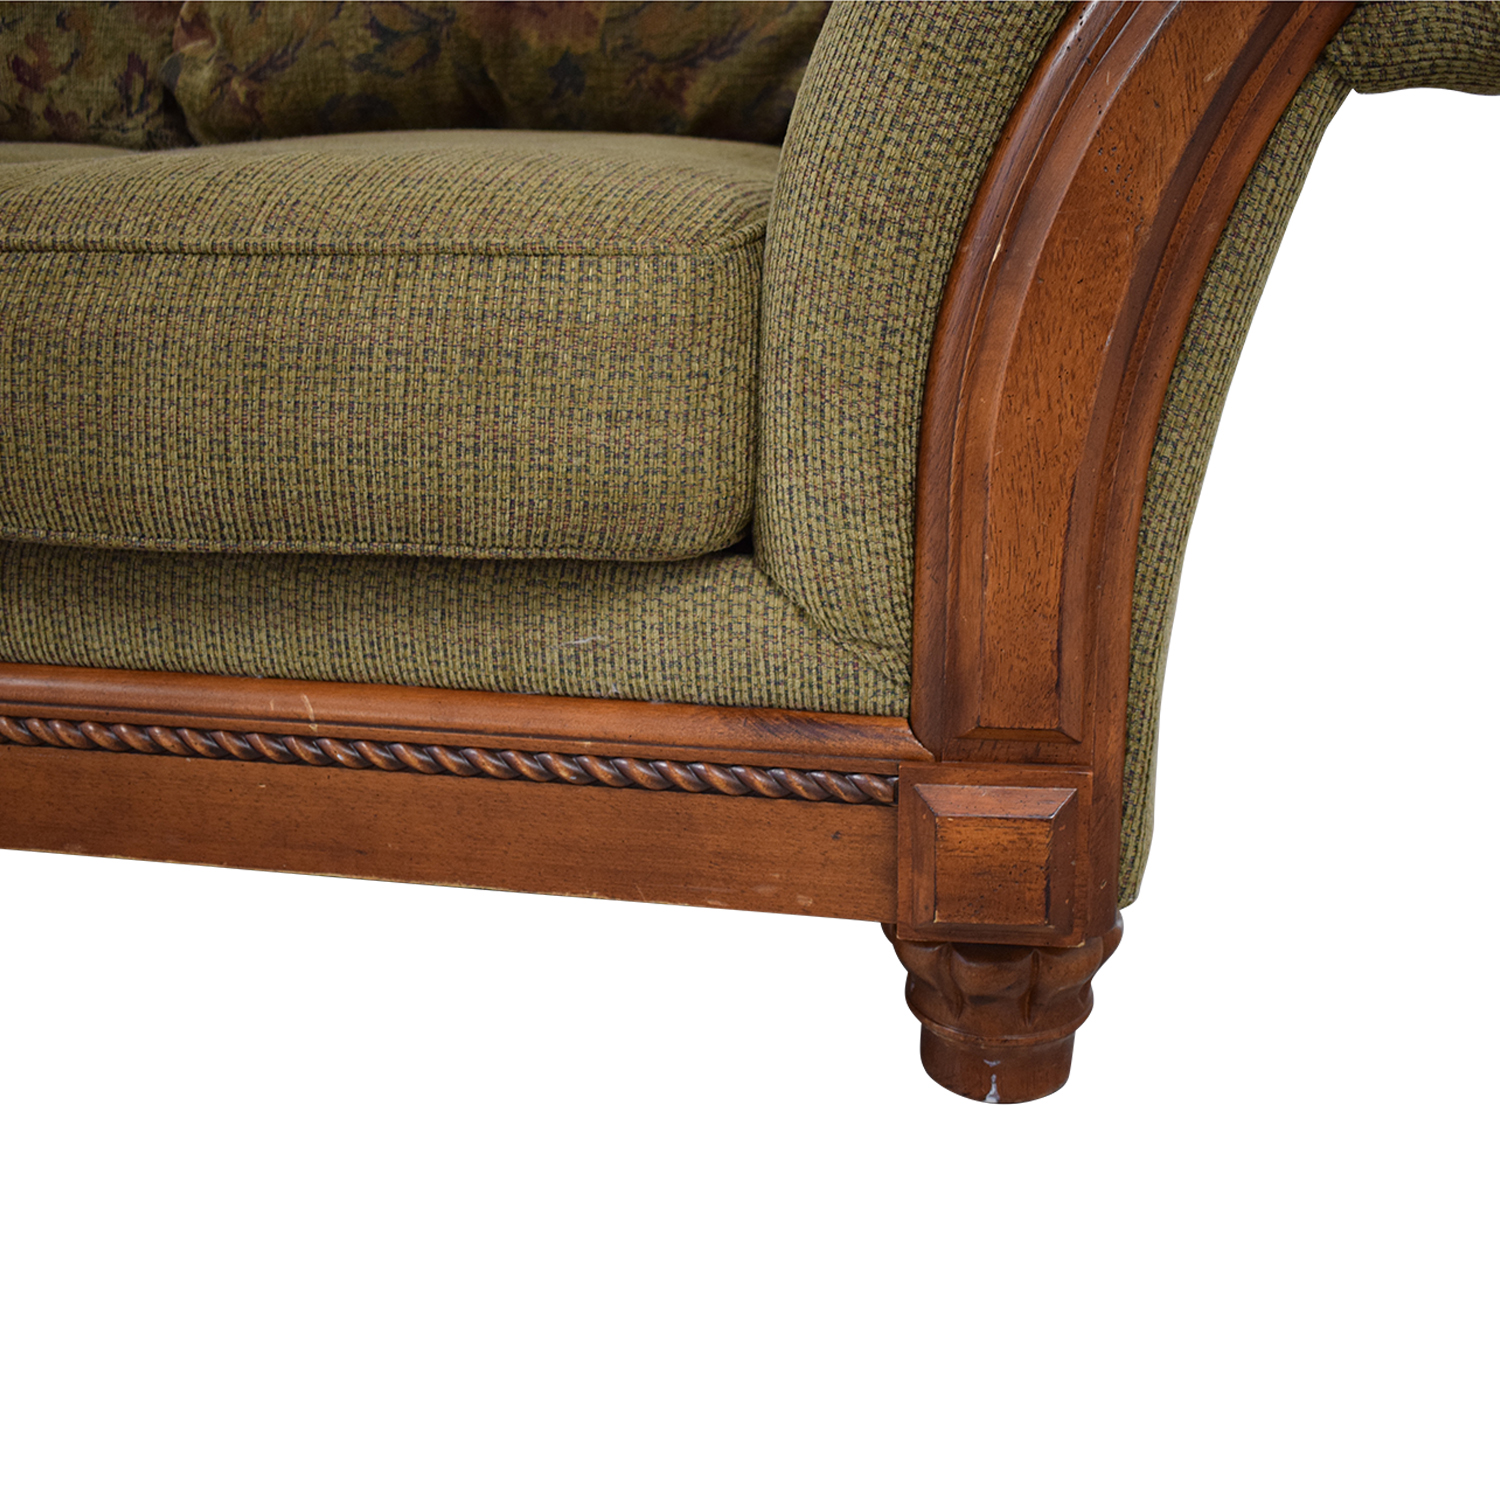 Klaussner Klaussner Upholstered Loveseat Couch